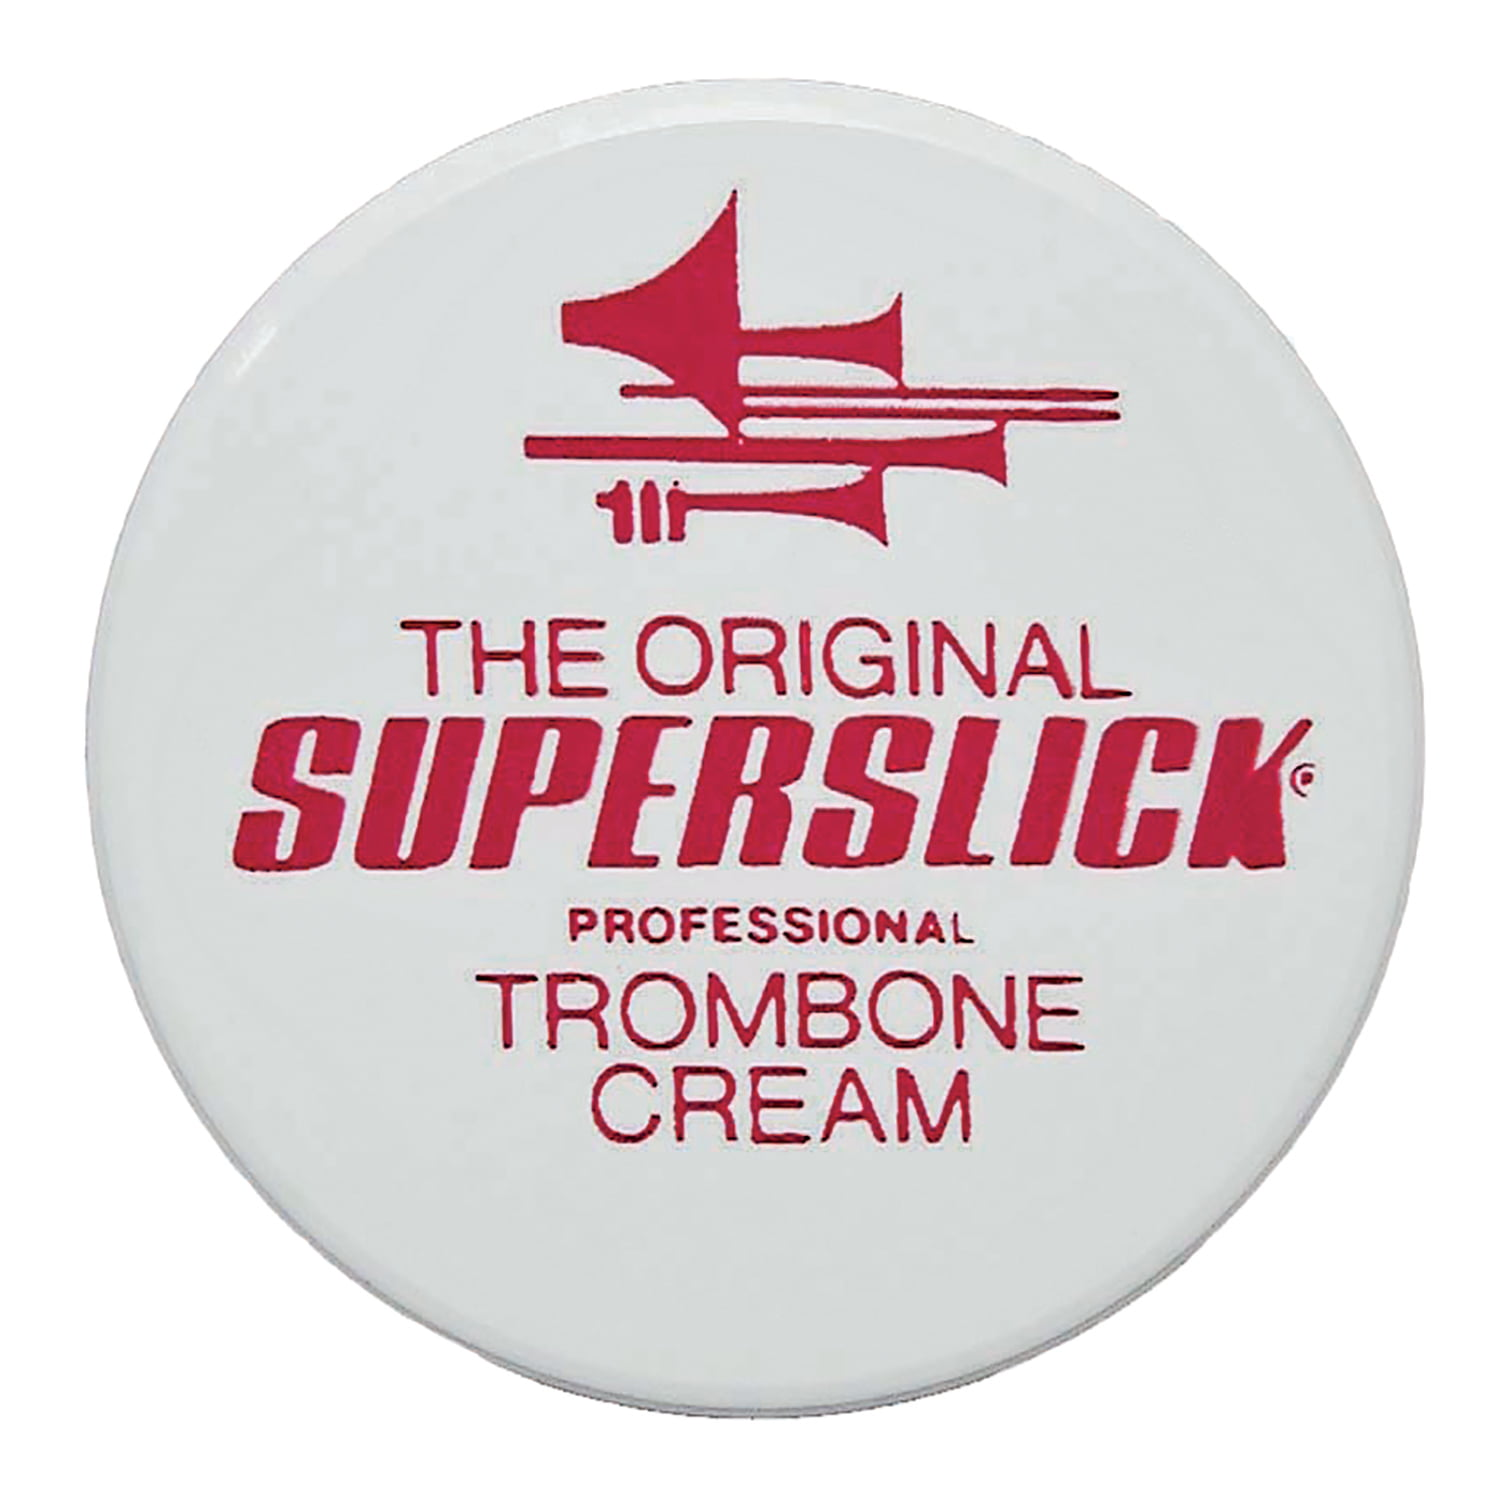 Slide Cream,TBone,Superslick SSTC by American Way Marketing, Llc